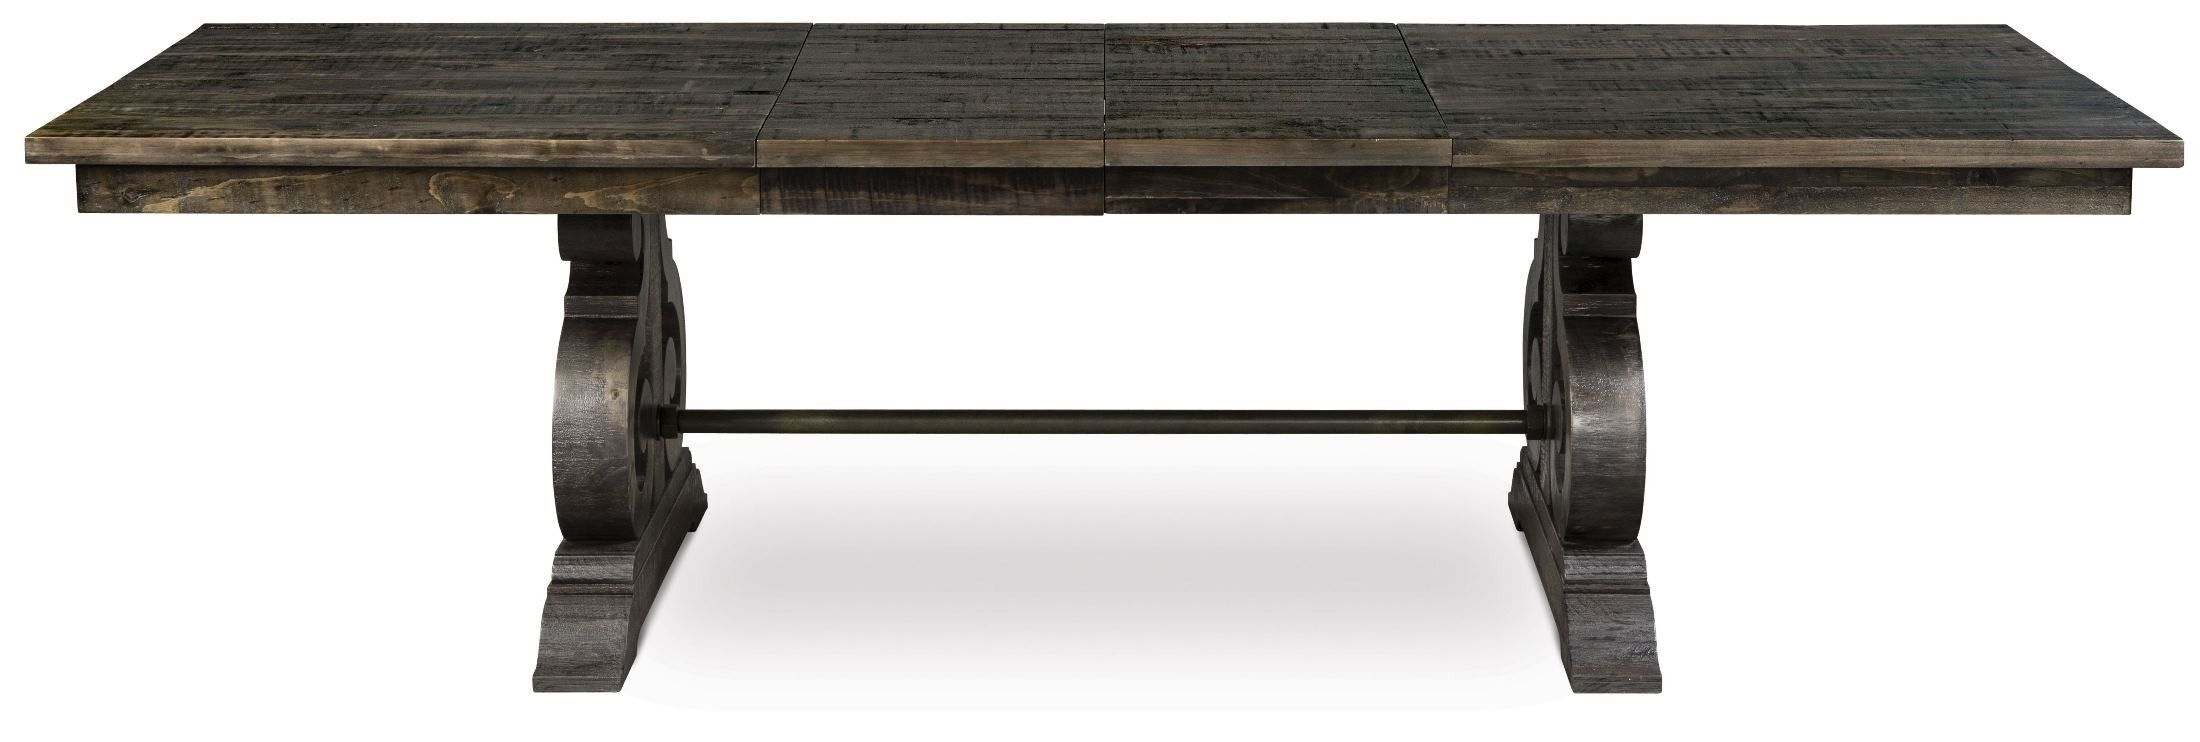 Bellamy Rectangular Extendable Dining Table | For The Home Within Recent Chapleau Ii Extension Dining Tables (View 13 of 20)